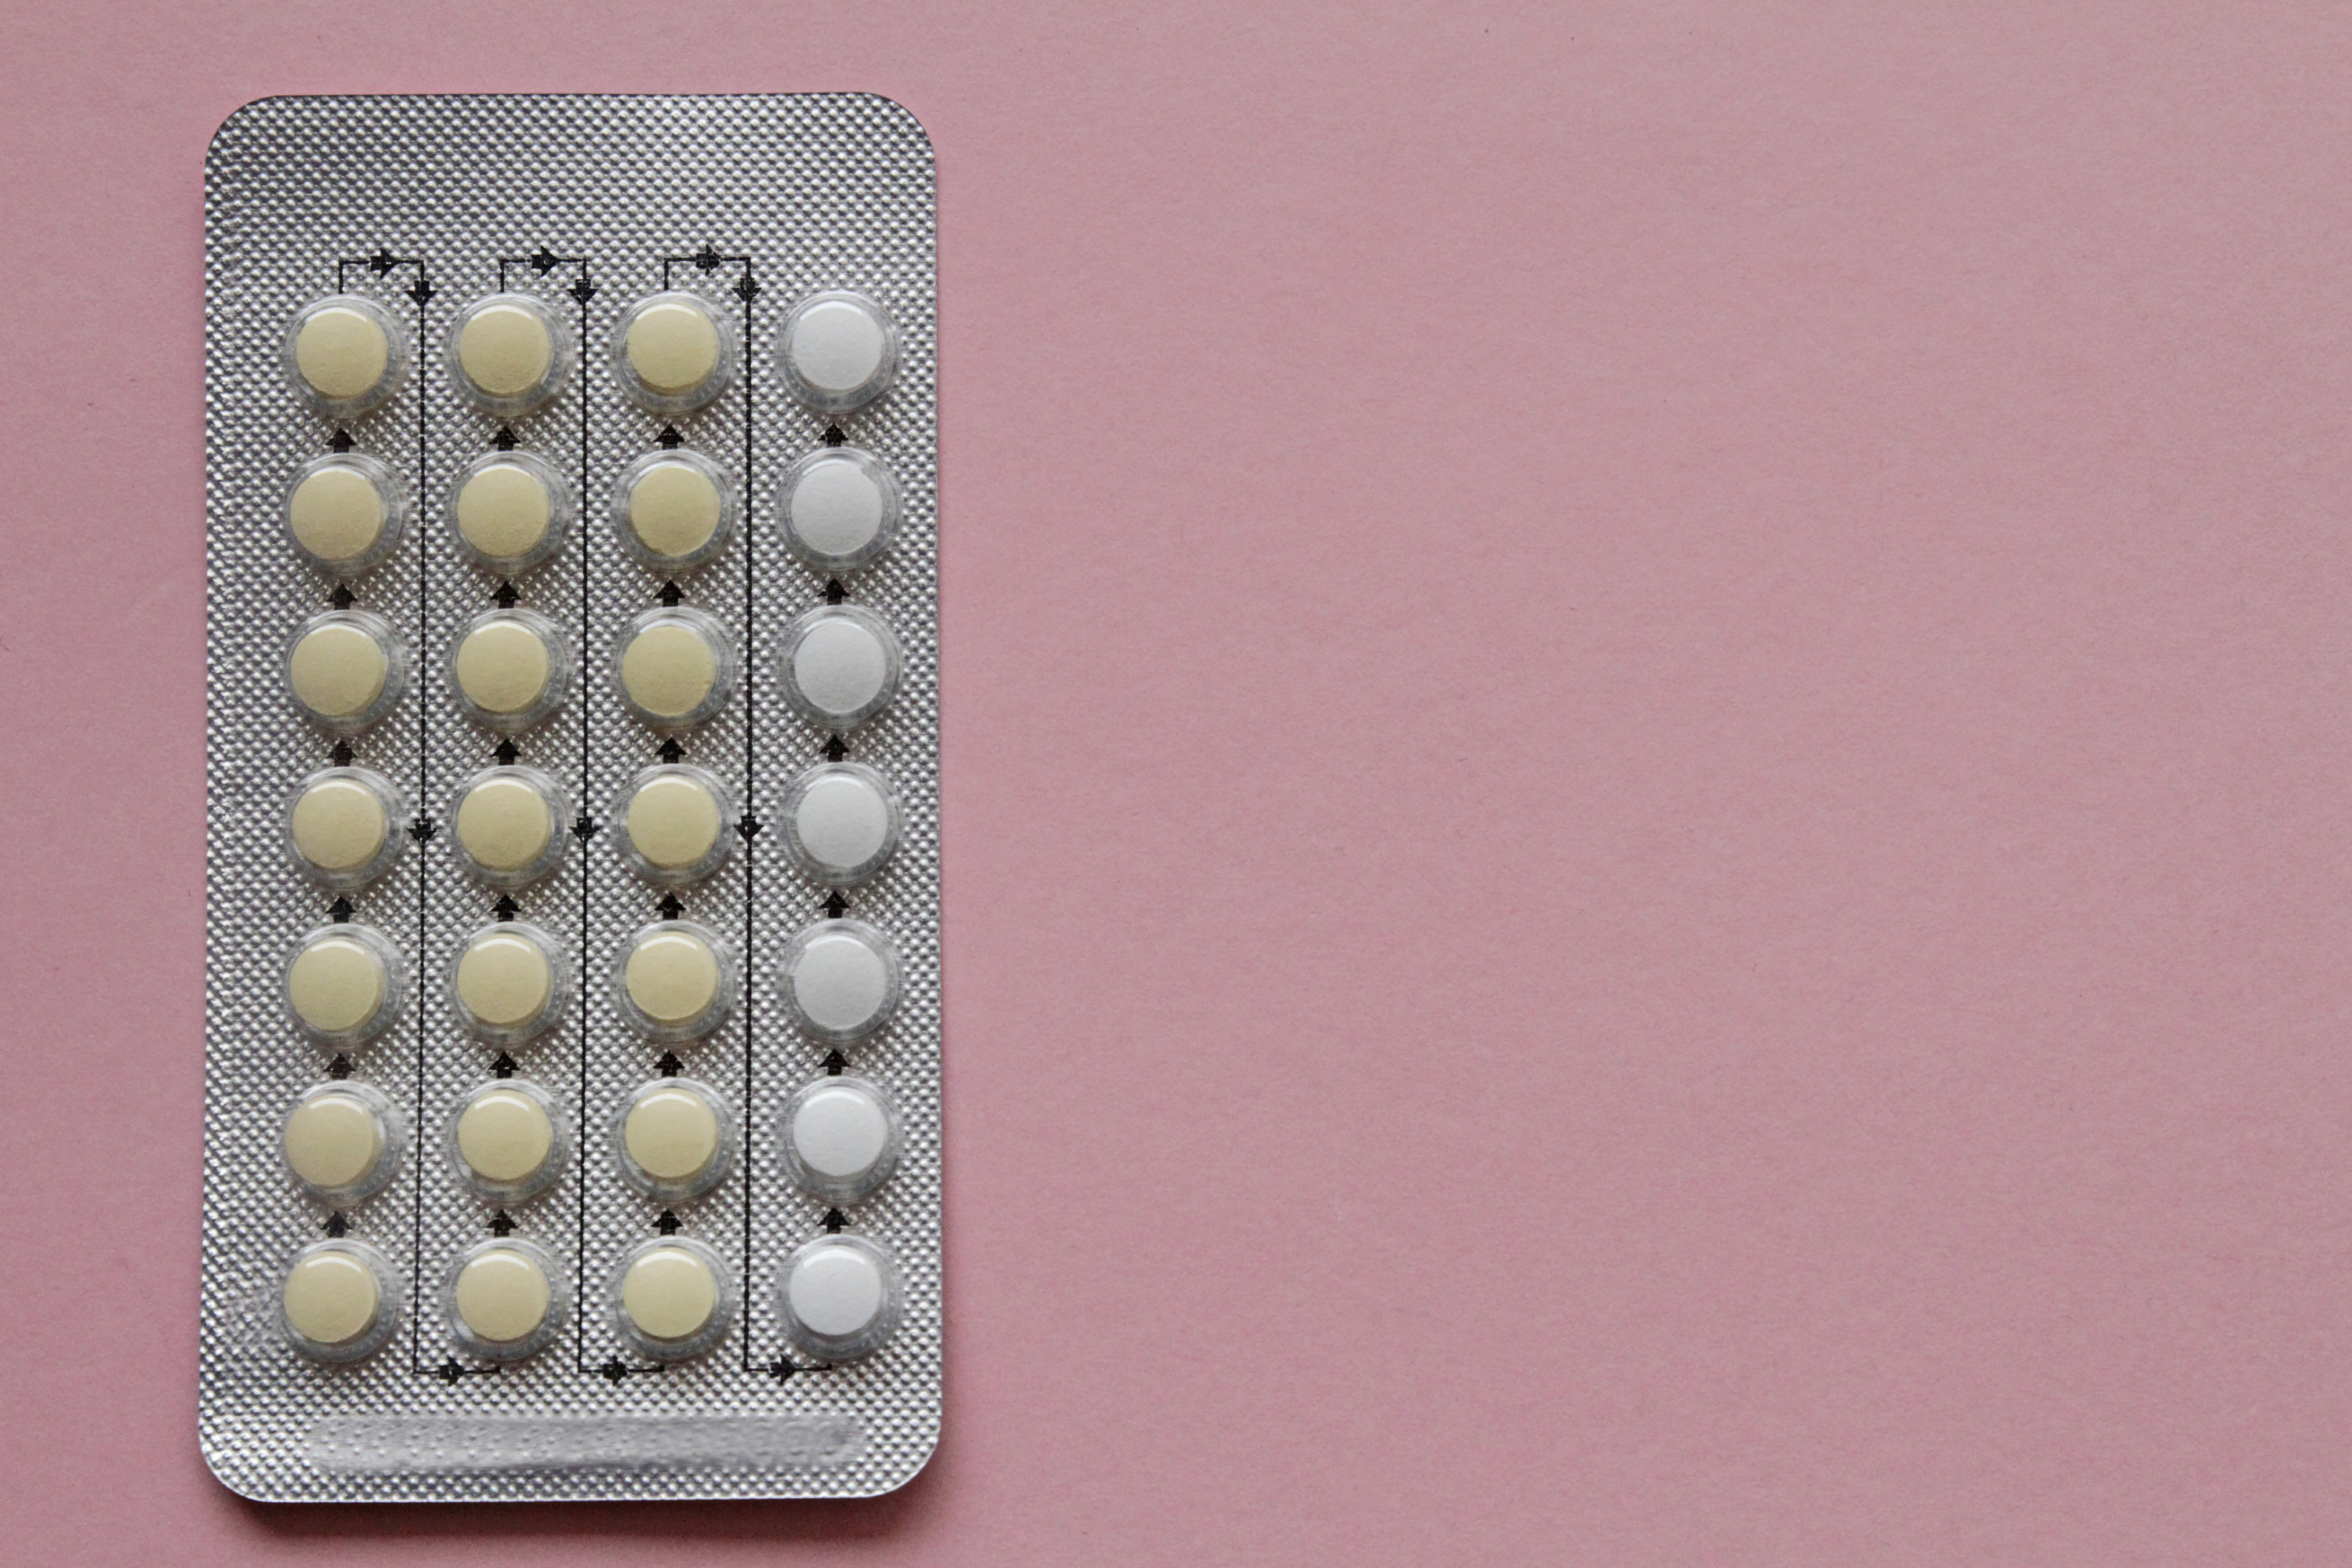 A pack of birth control